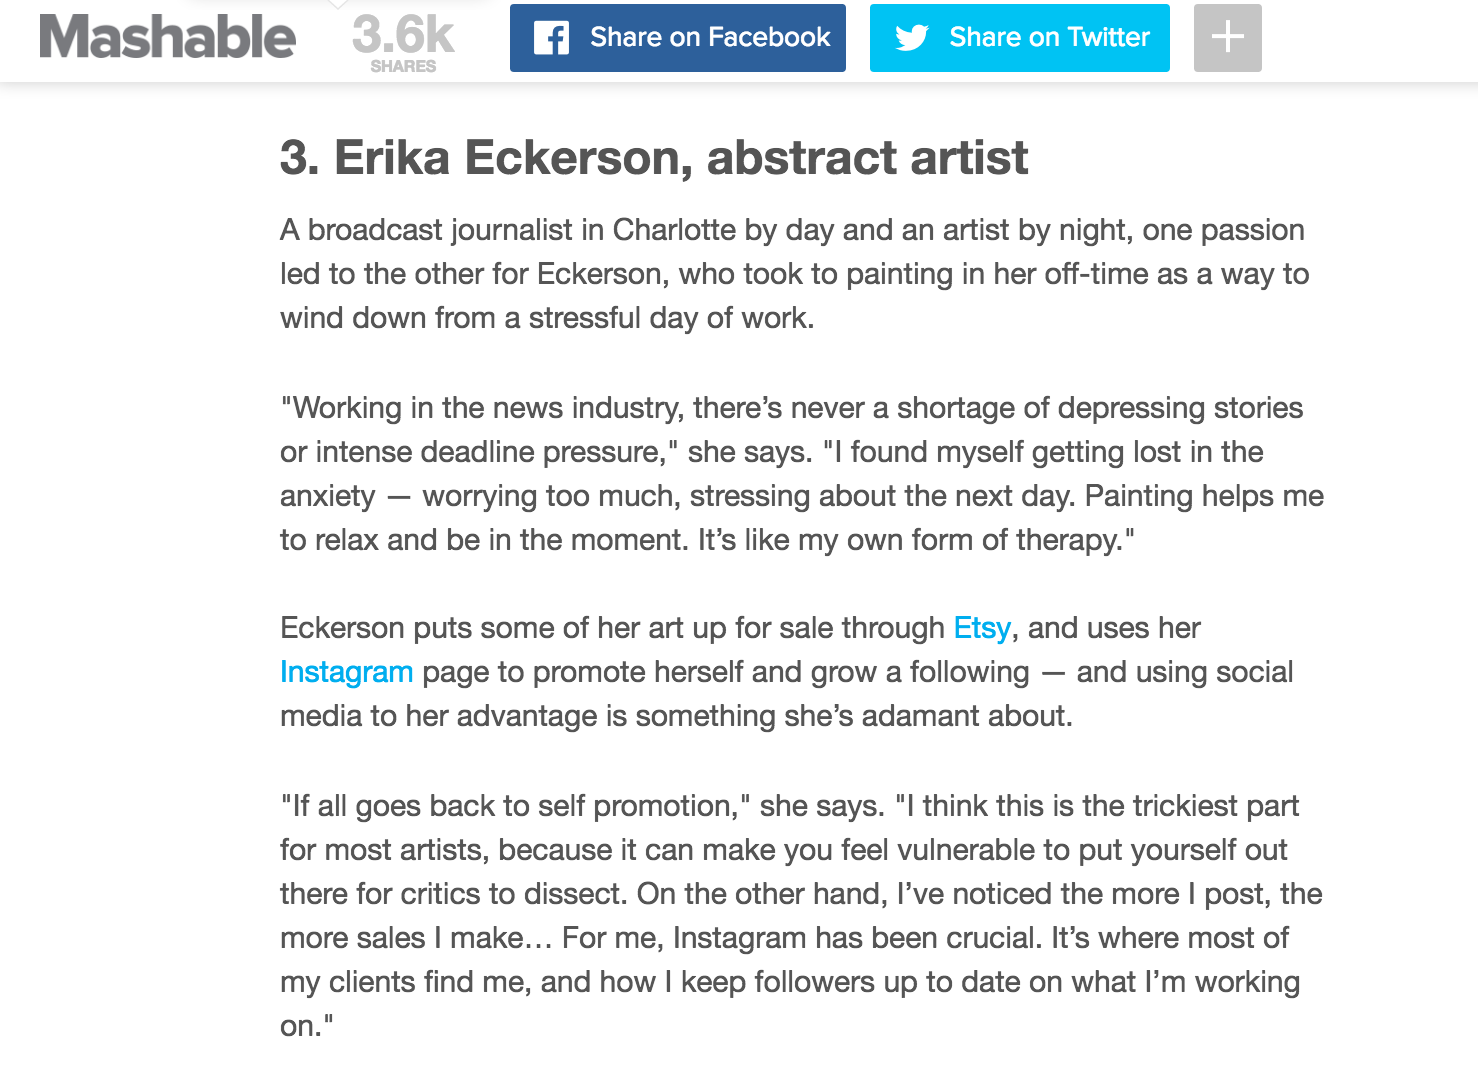 Defying the starving artist stereotype: Mashable.com